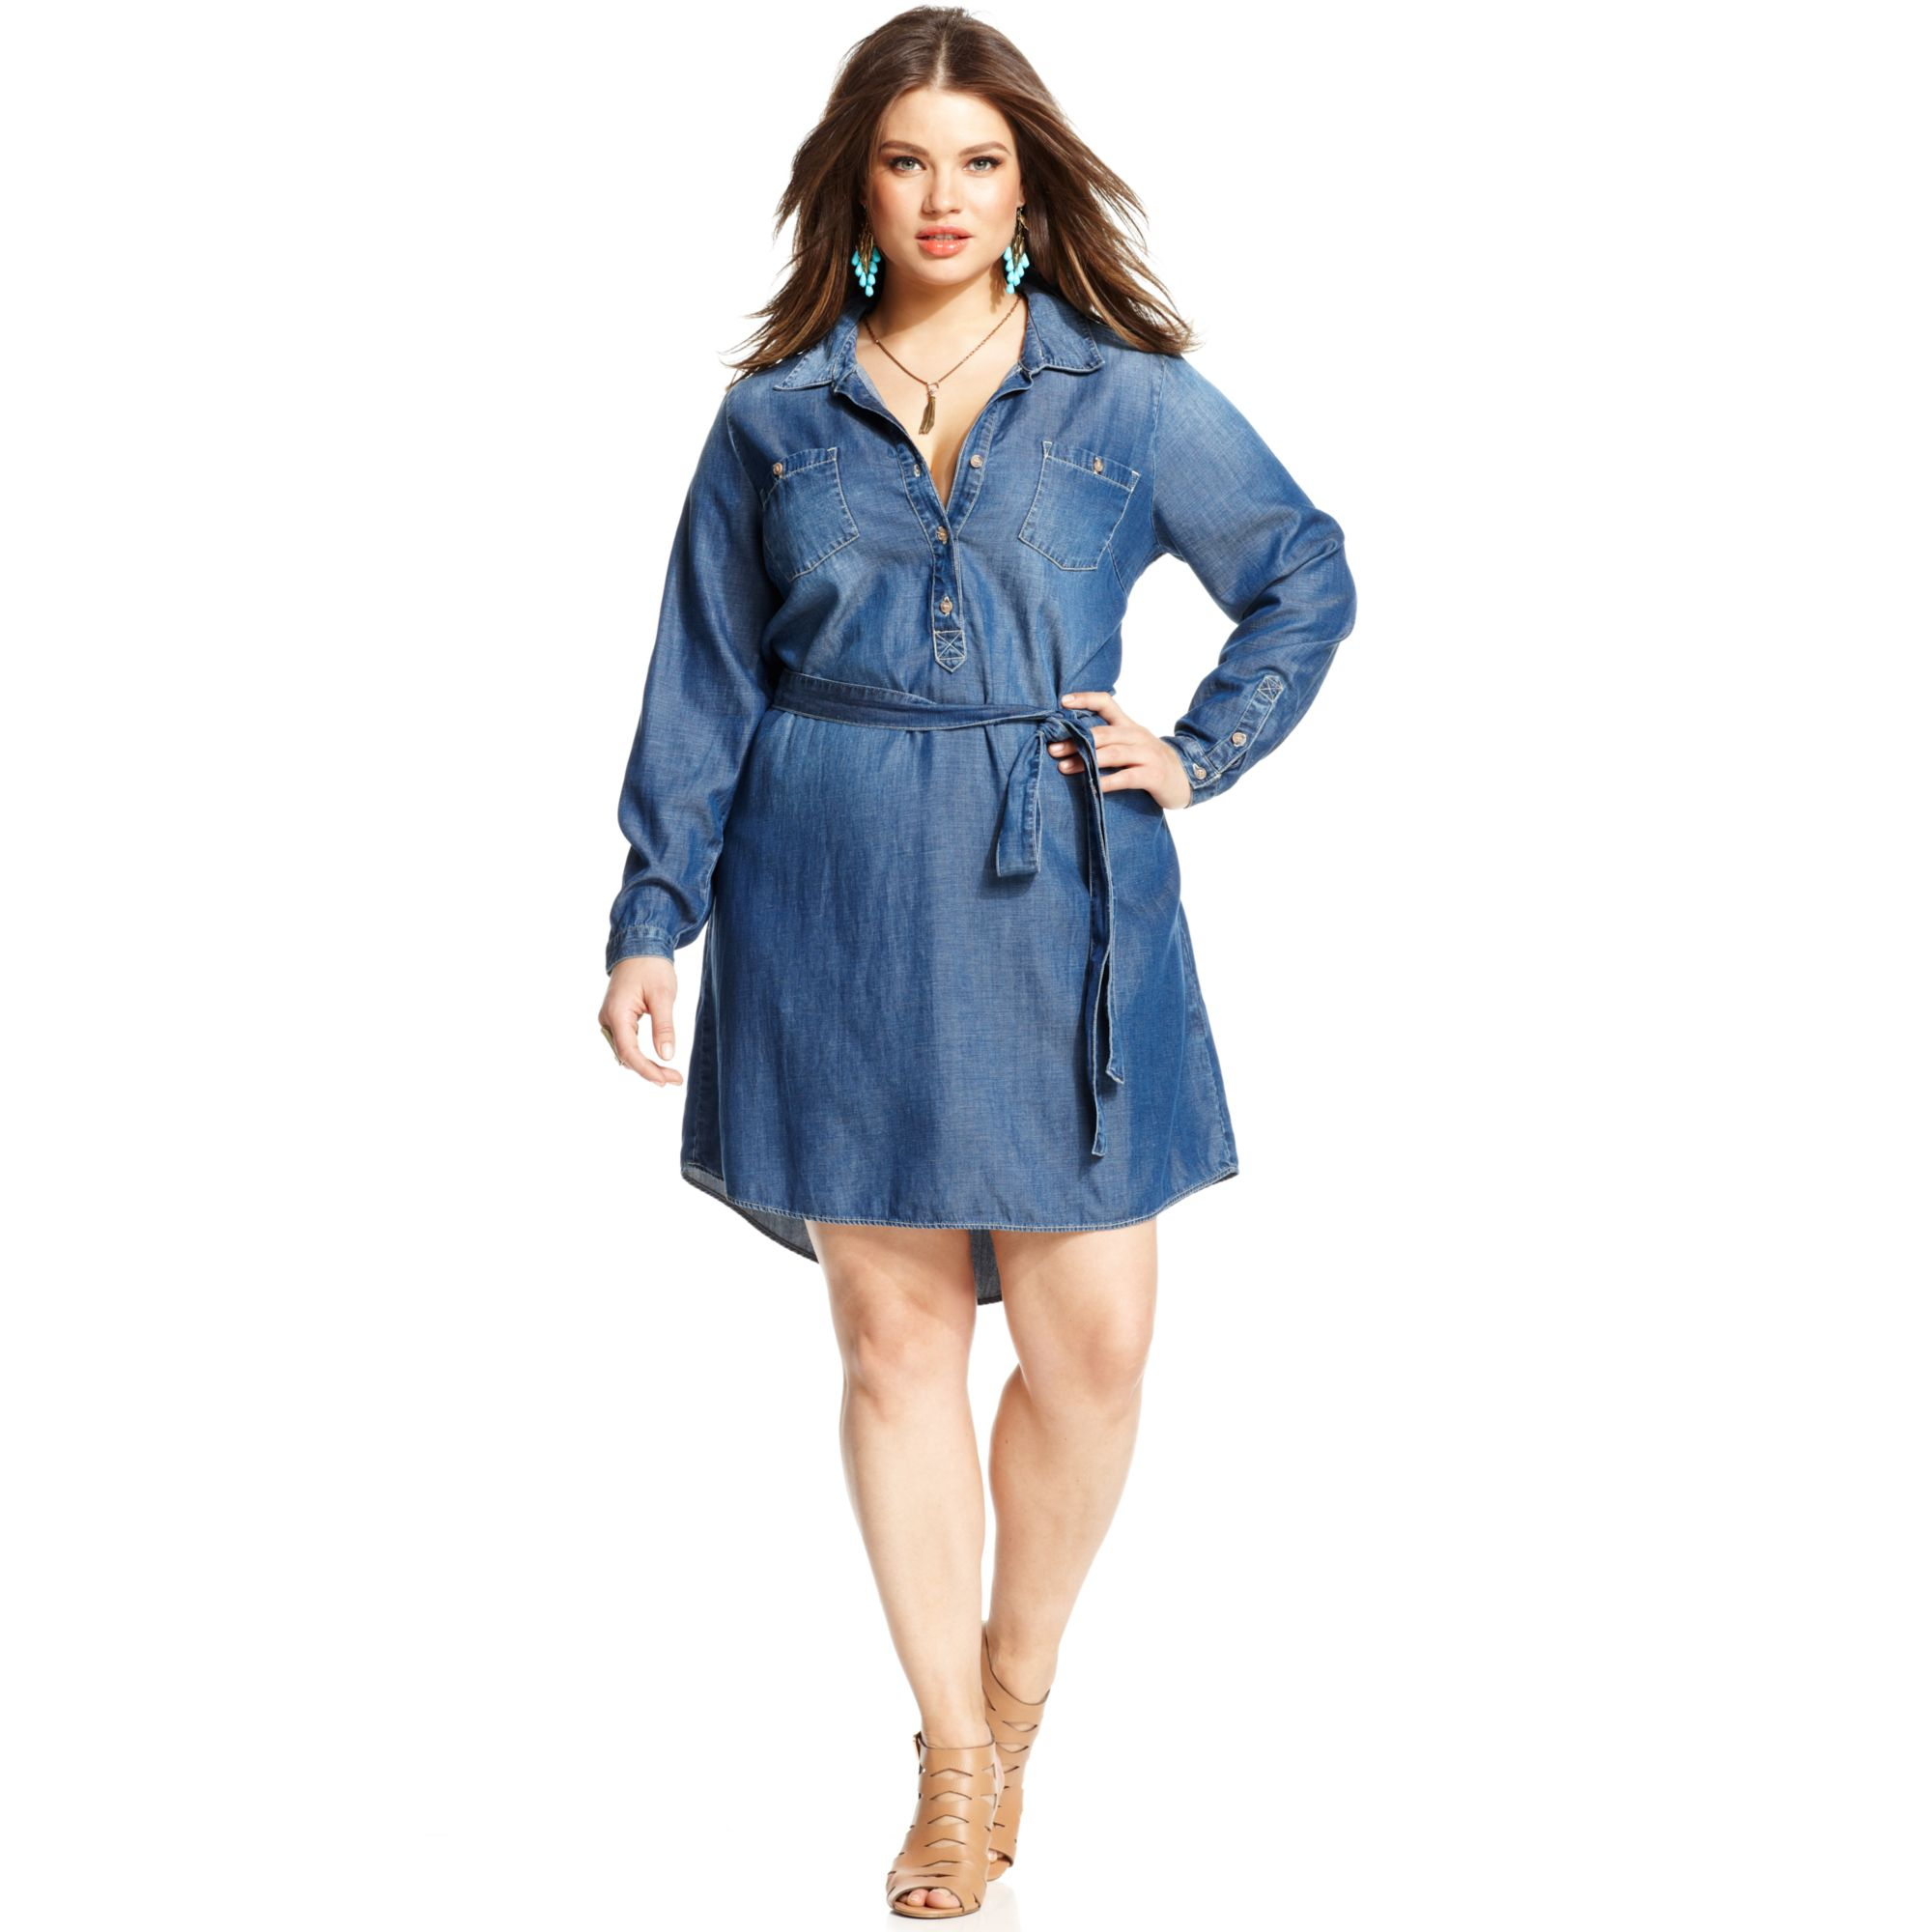 Shop plus size dresses cheap sale online, you can get sexy long sleeve, maxi plus size dresses for women at wholesale prices on techclux.gq FREE Shipping available worldwide. Plus Size T-shirts. Plus Size Outerwear. Plus Size Blouses. Plus Size Activewear. Plus Size Sweaters & Cardigans. Plus Size Intimates. Plus Size Hoodies. Bottoms.